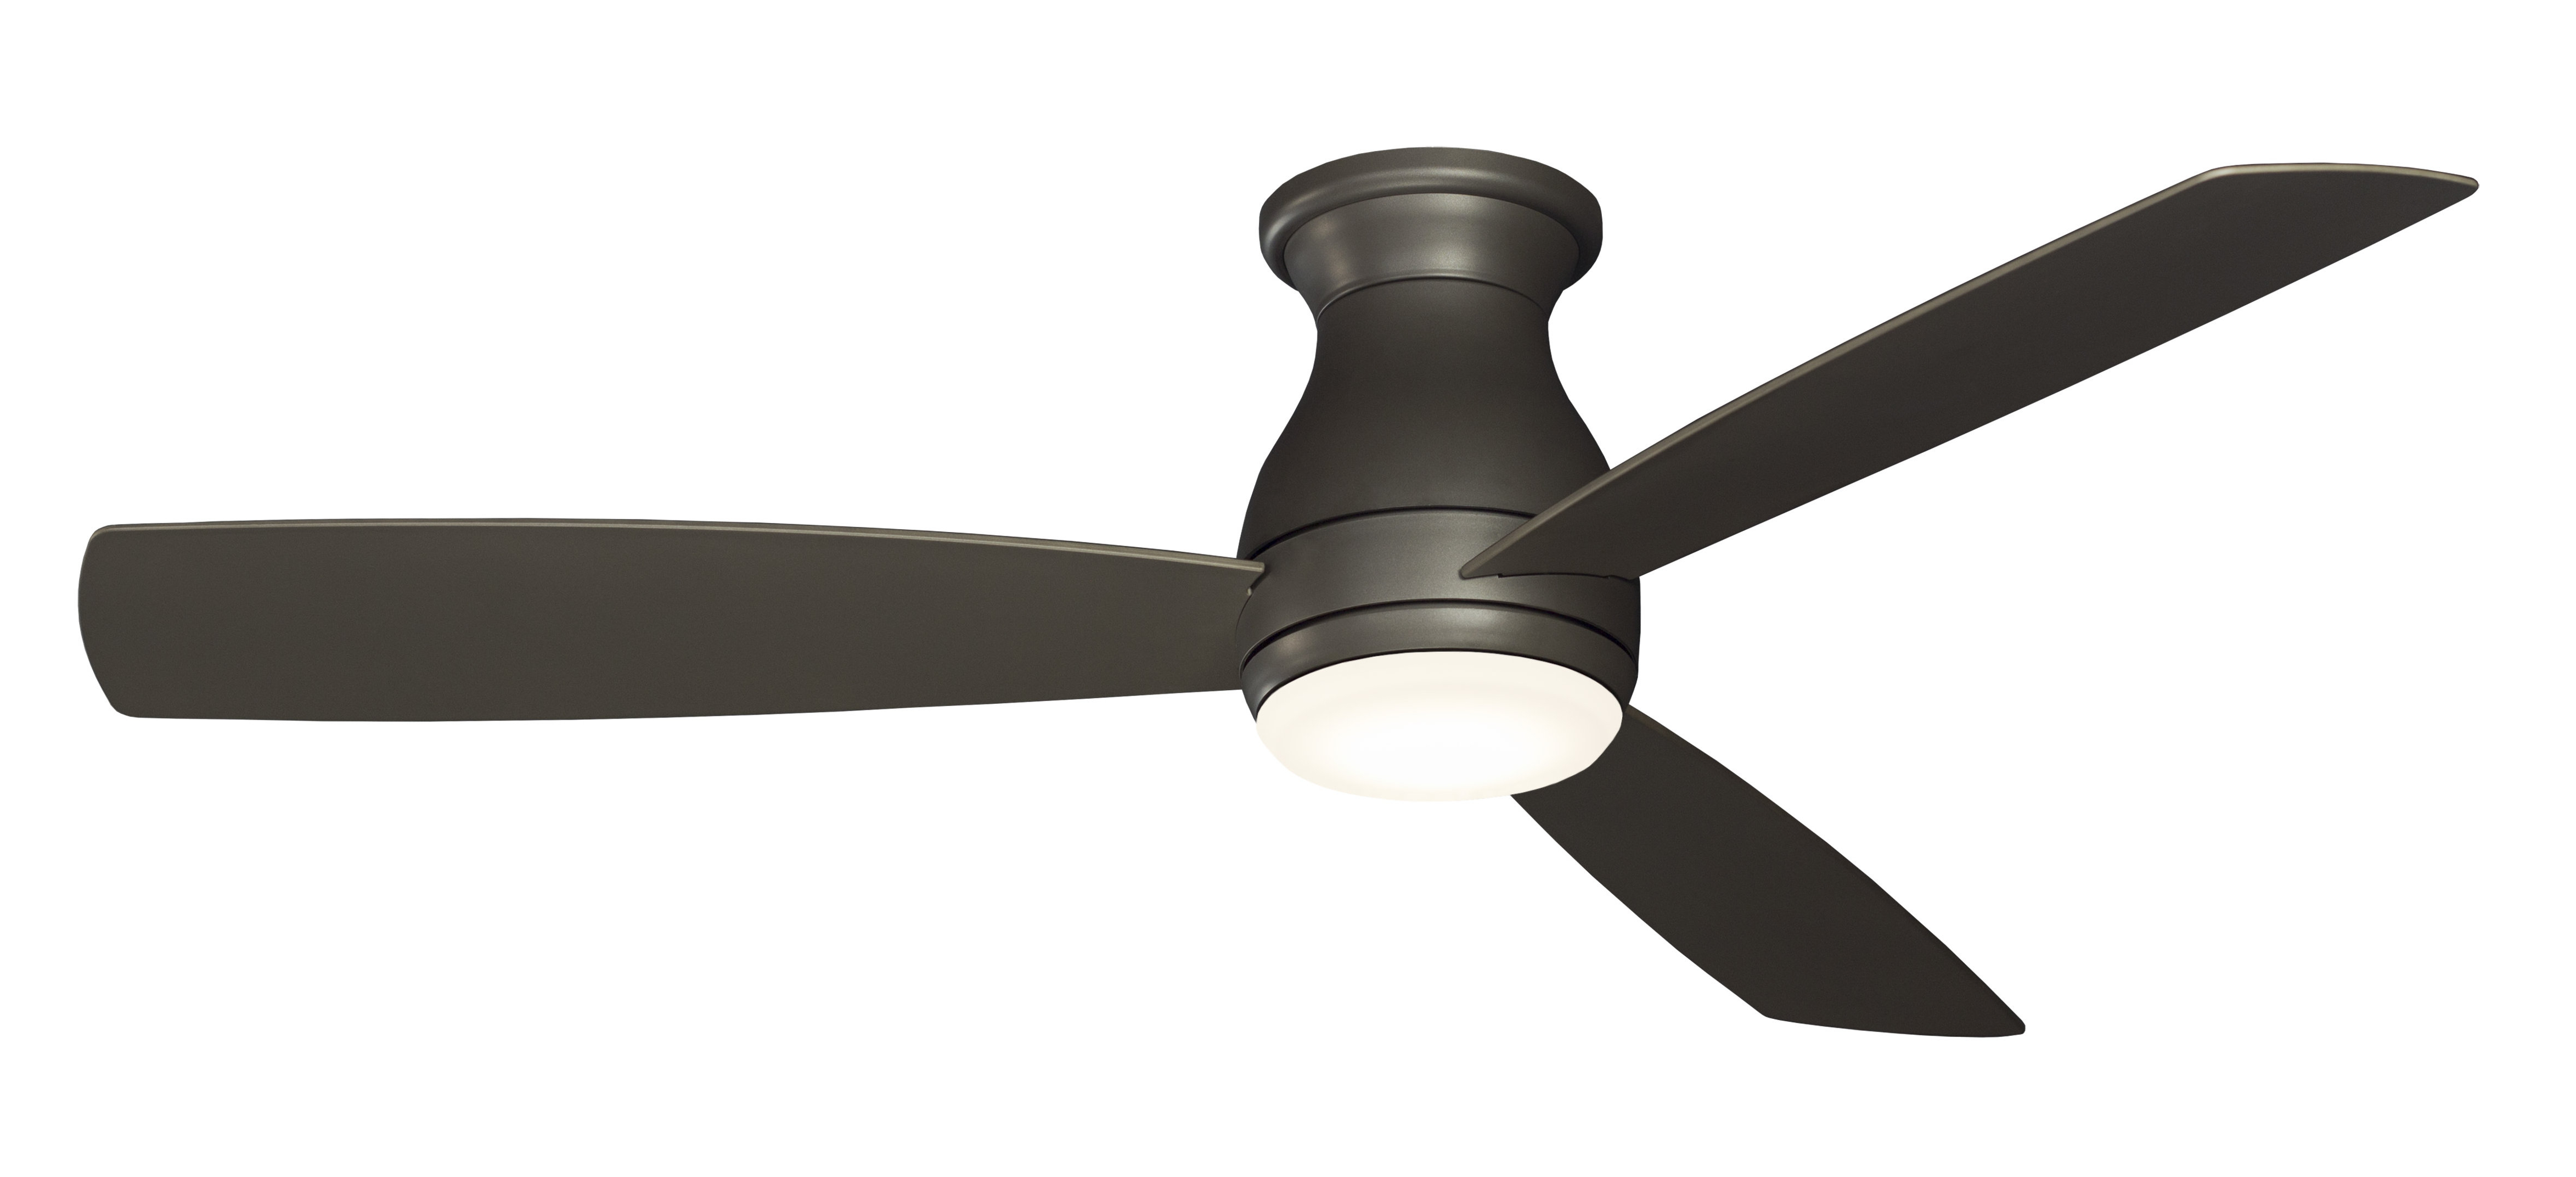 "2020 Cassius 3 Blade Outdoor Ceiling Fans Intended For 52"" Hugh 3 Blade Outdoor Led Ceiling Fan (View 2 of 20)"